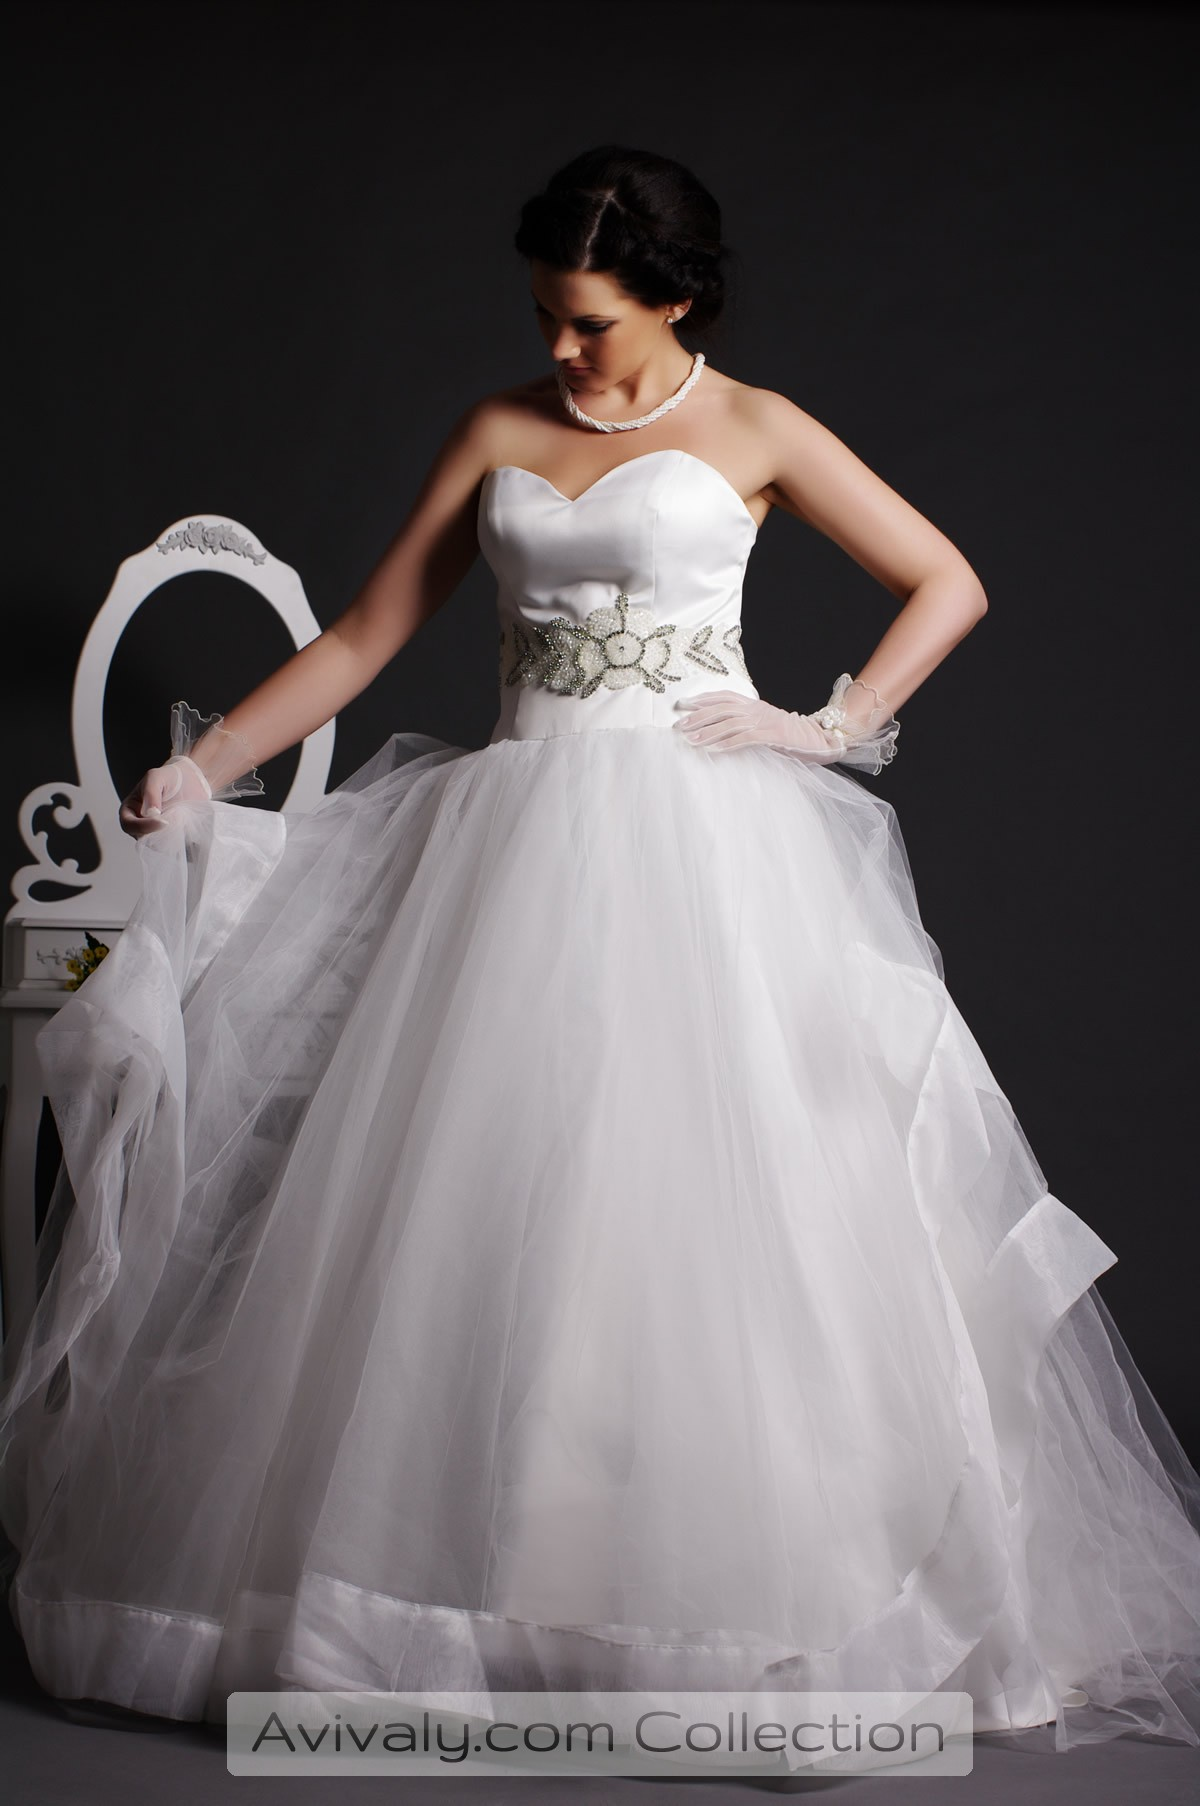 Whity - Tulle Ball Gown Skirt with Organza Hem